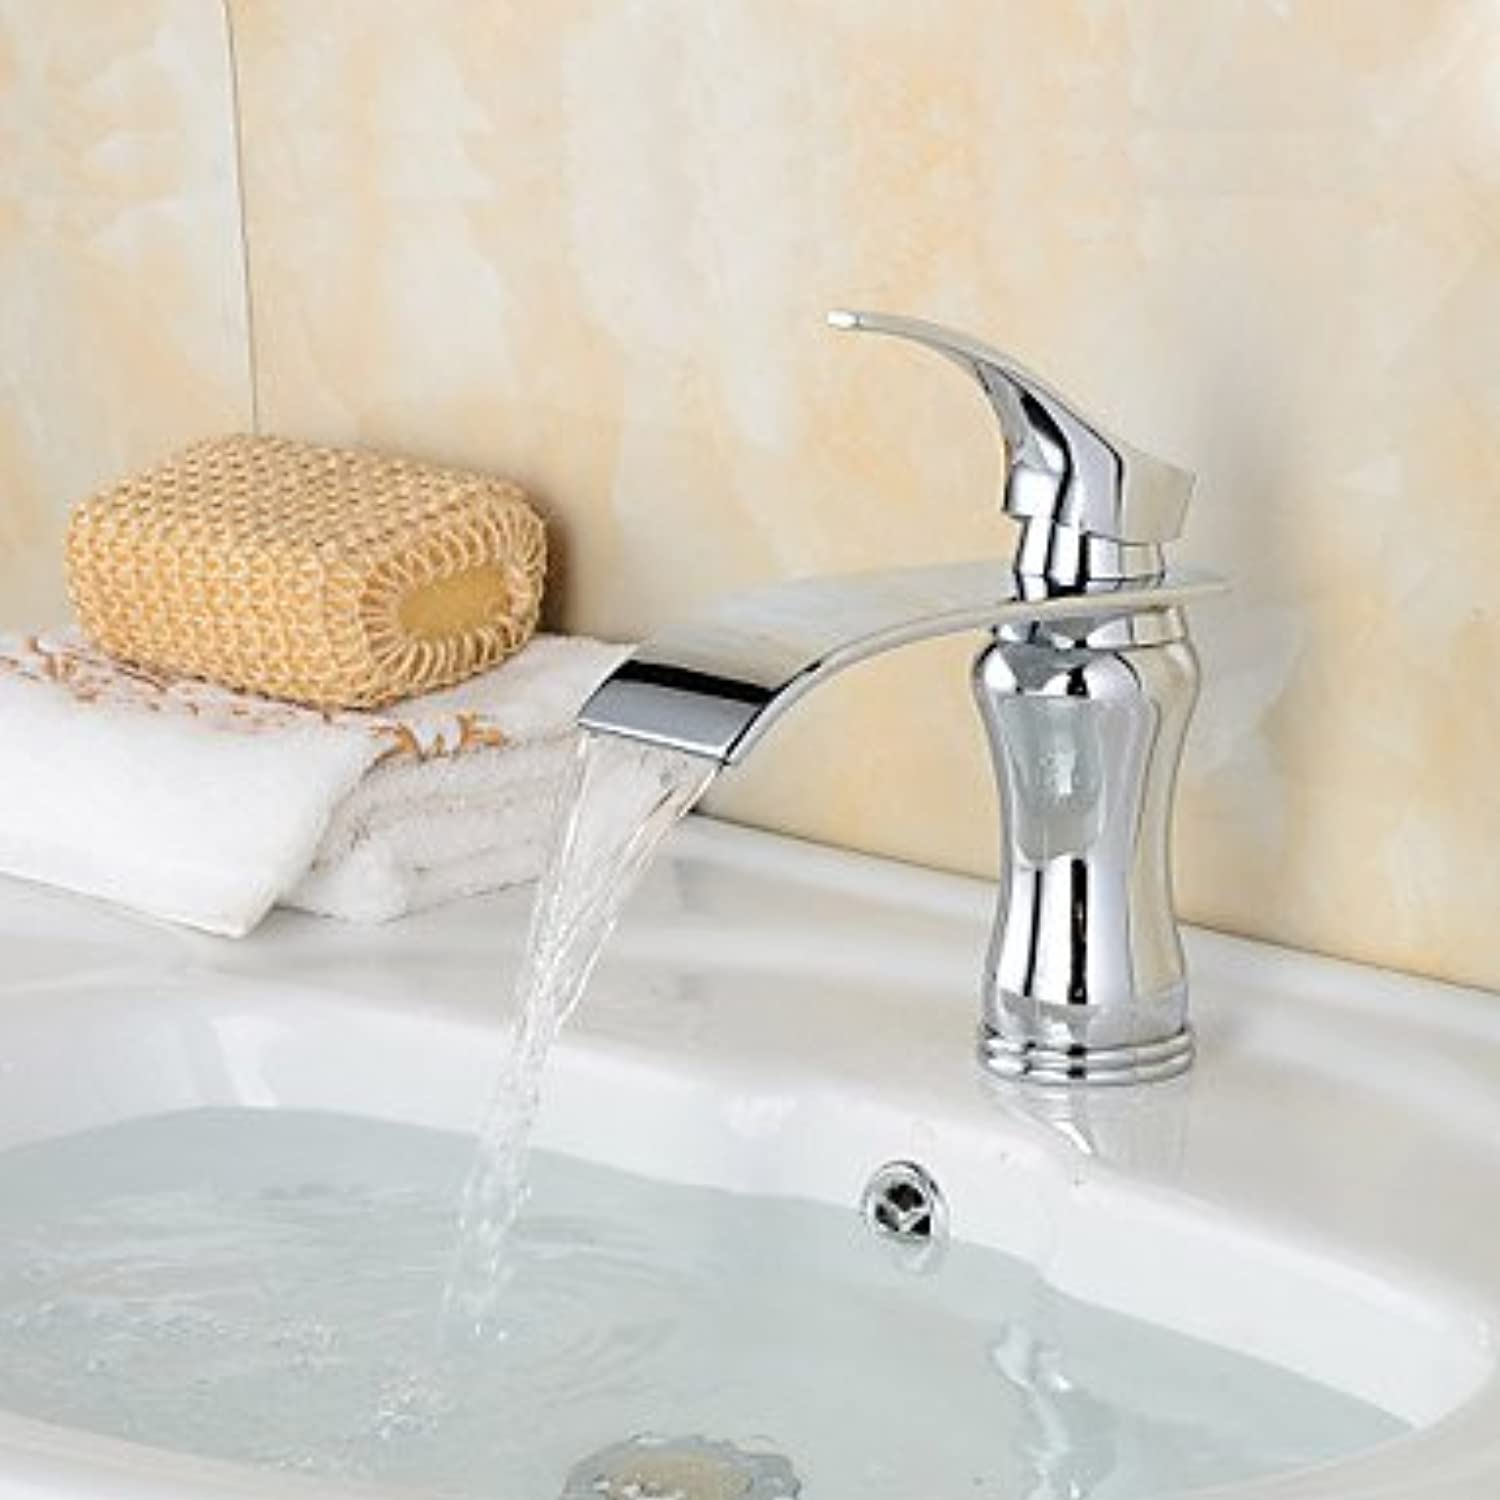 GDS Faucet£? Fashion Waterfall Brass Chrome Bathroom Sink Faucet - Silver